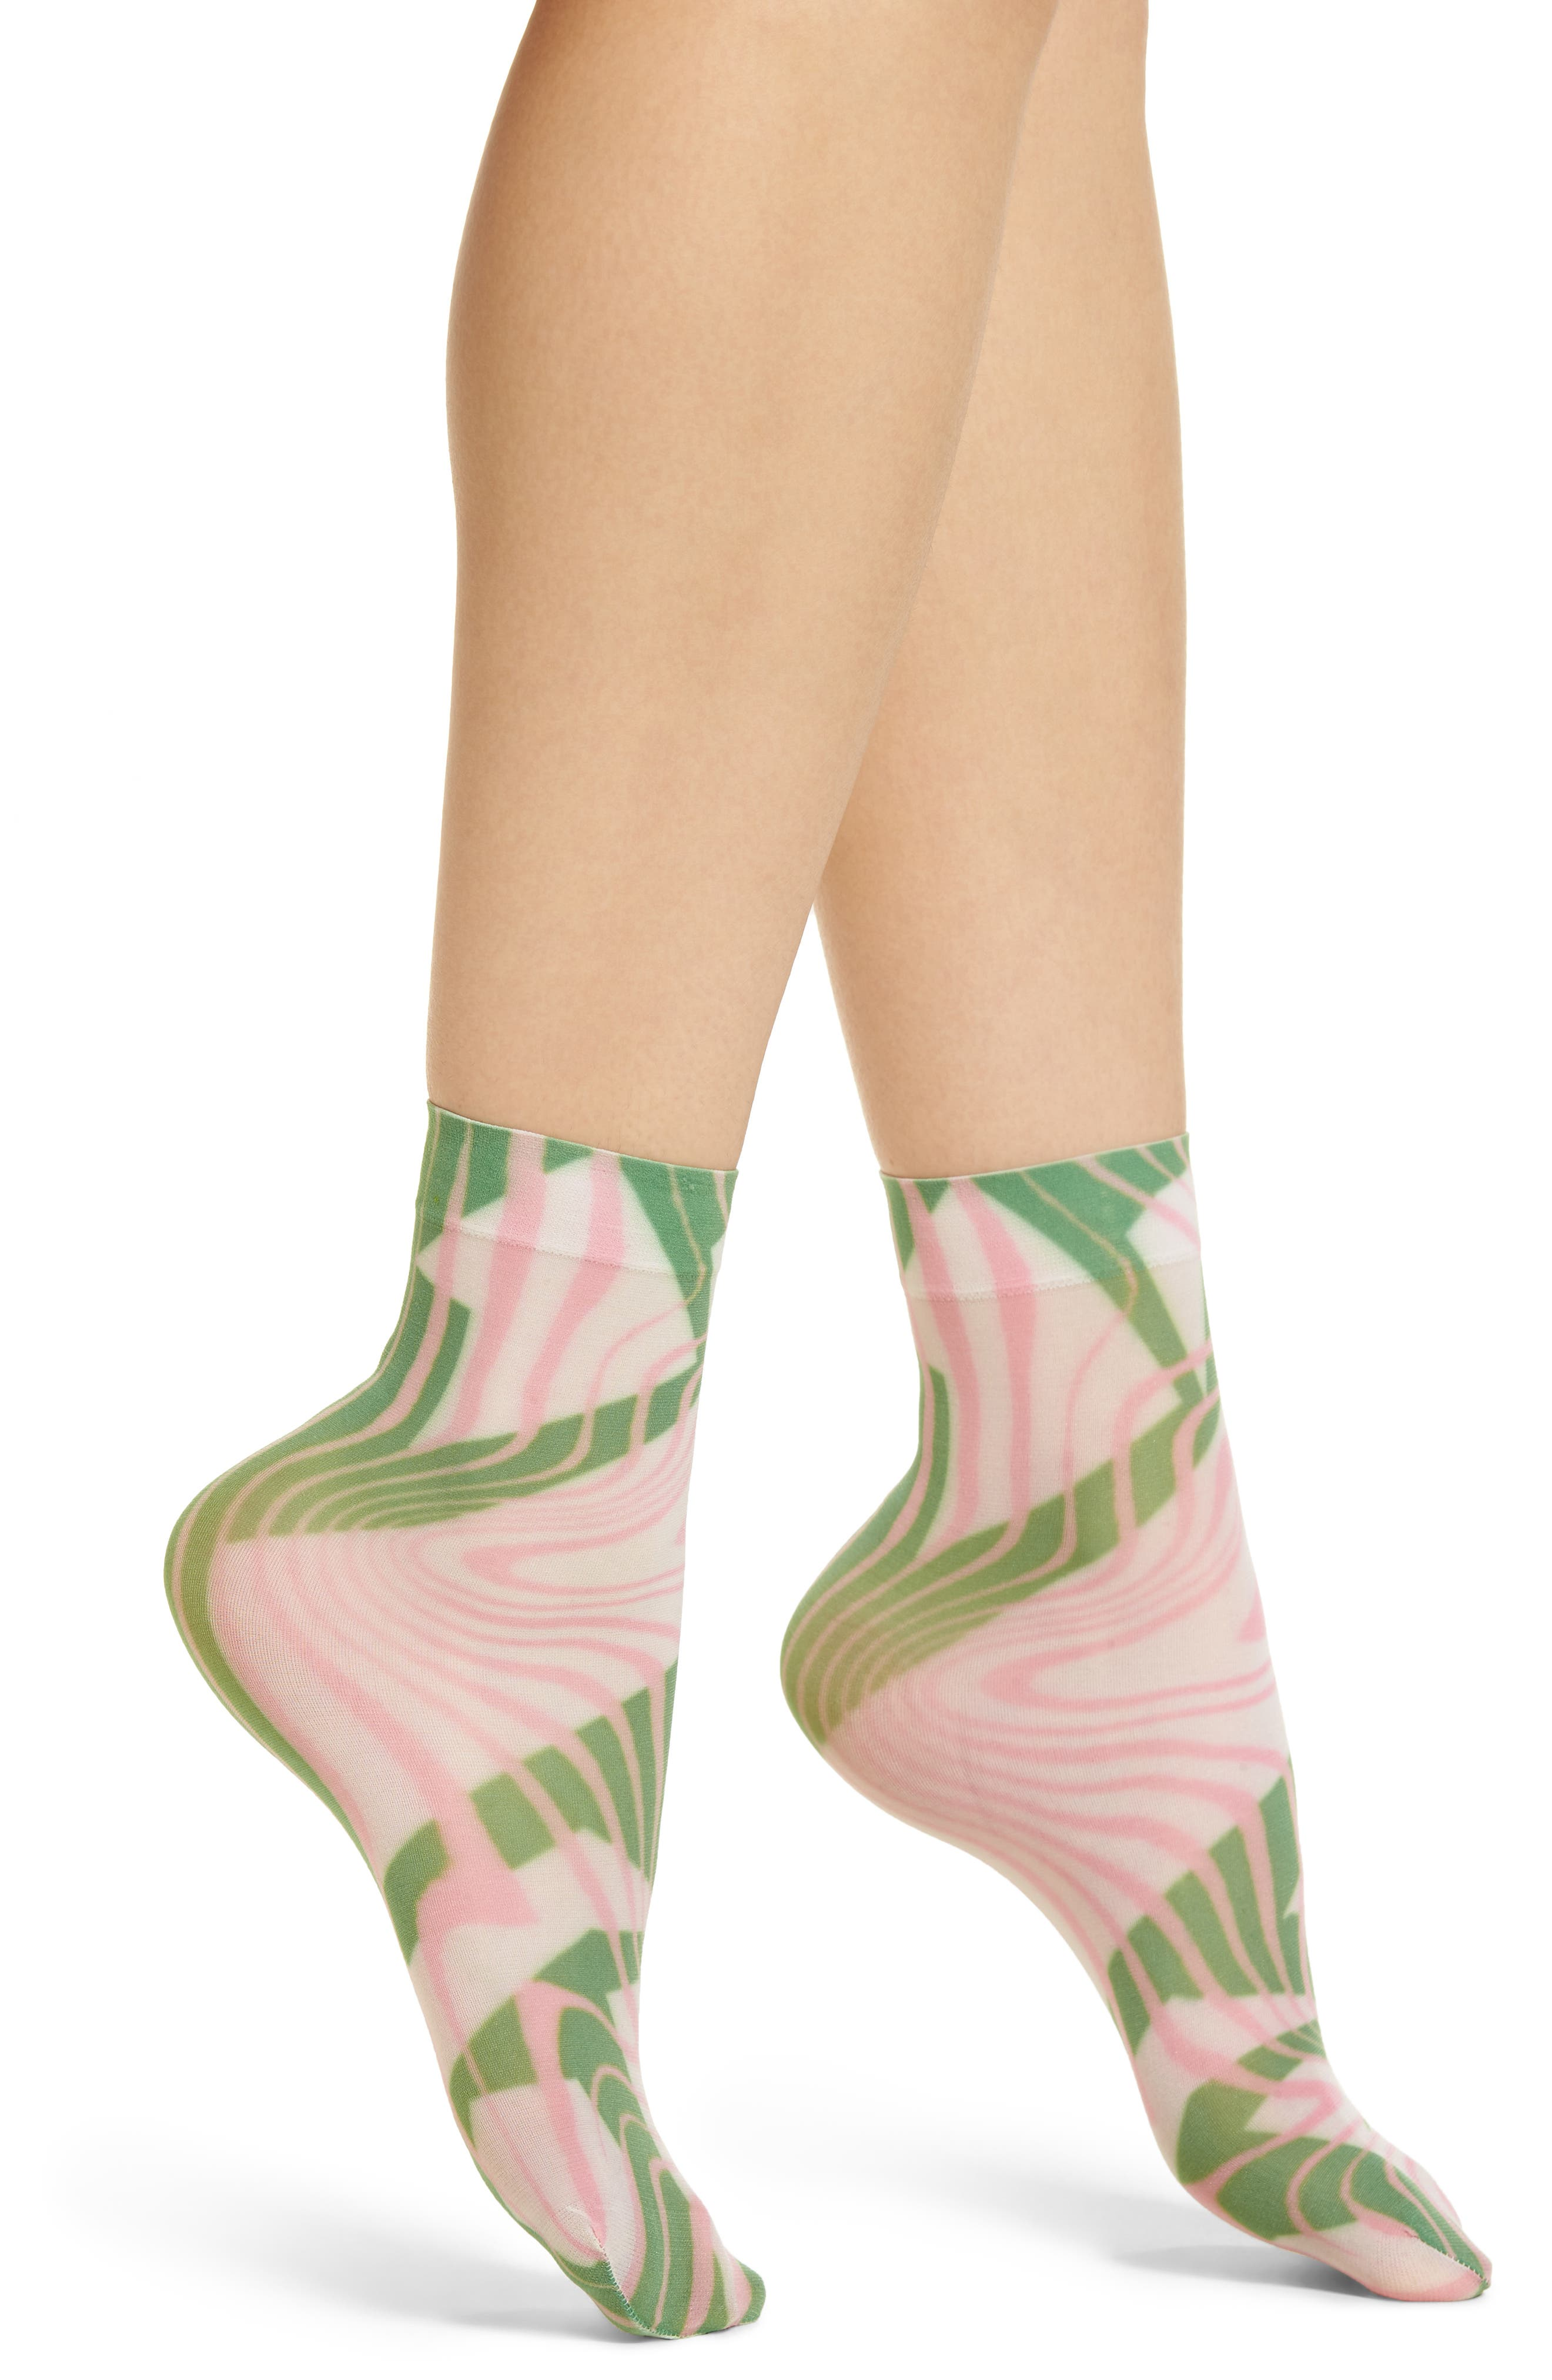 Mia Ankle Socks,                         Main,                         color, Pink